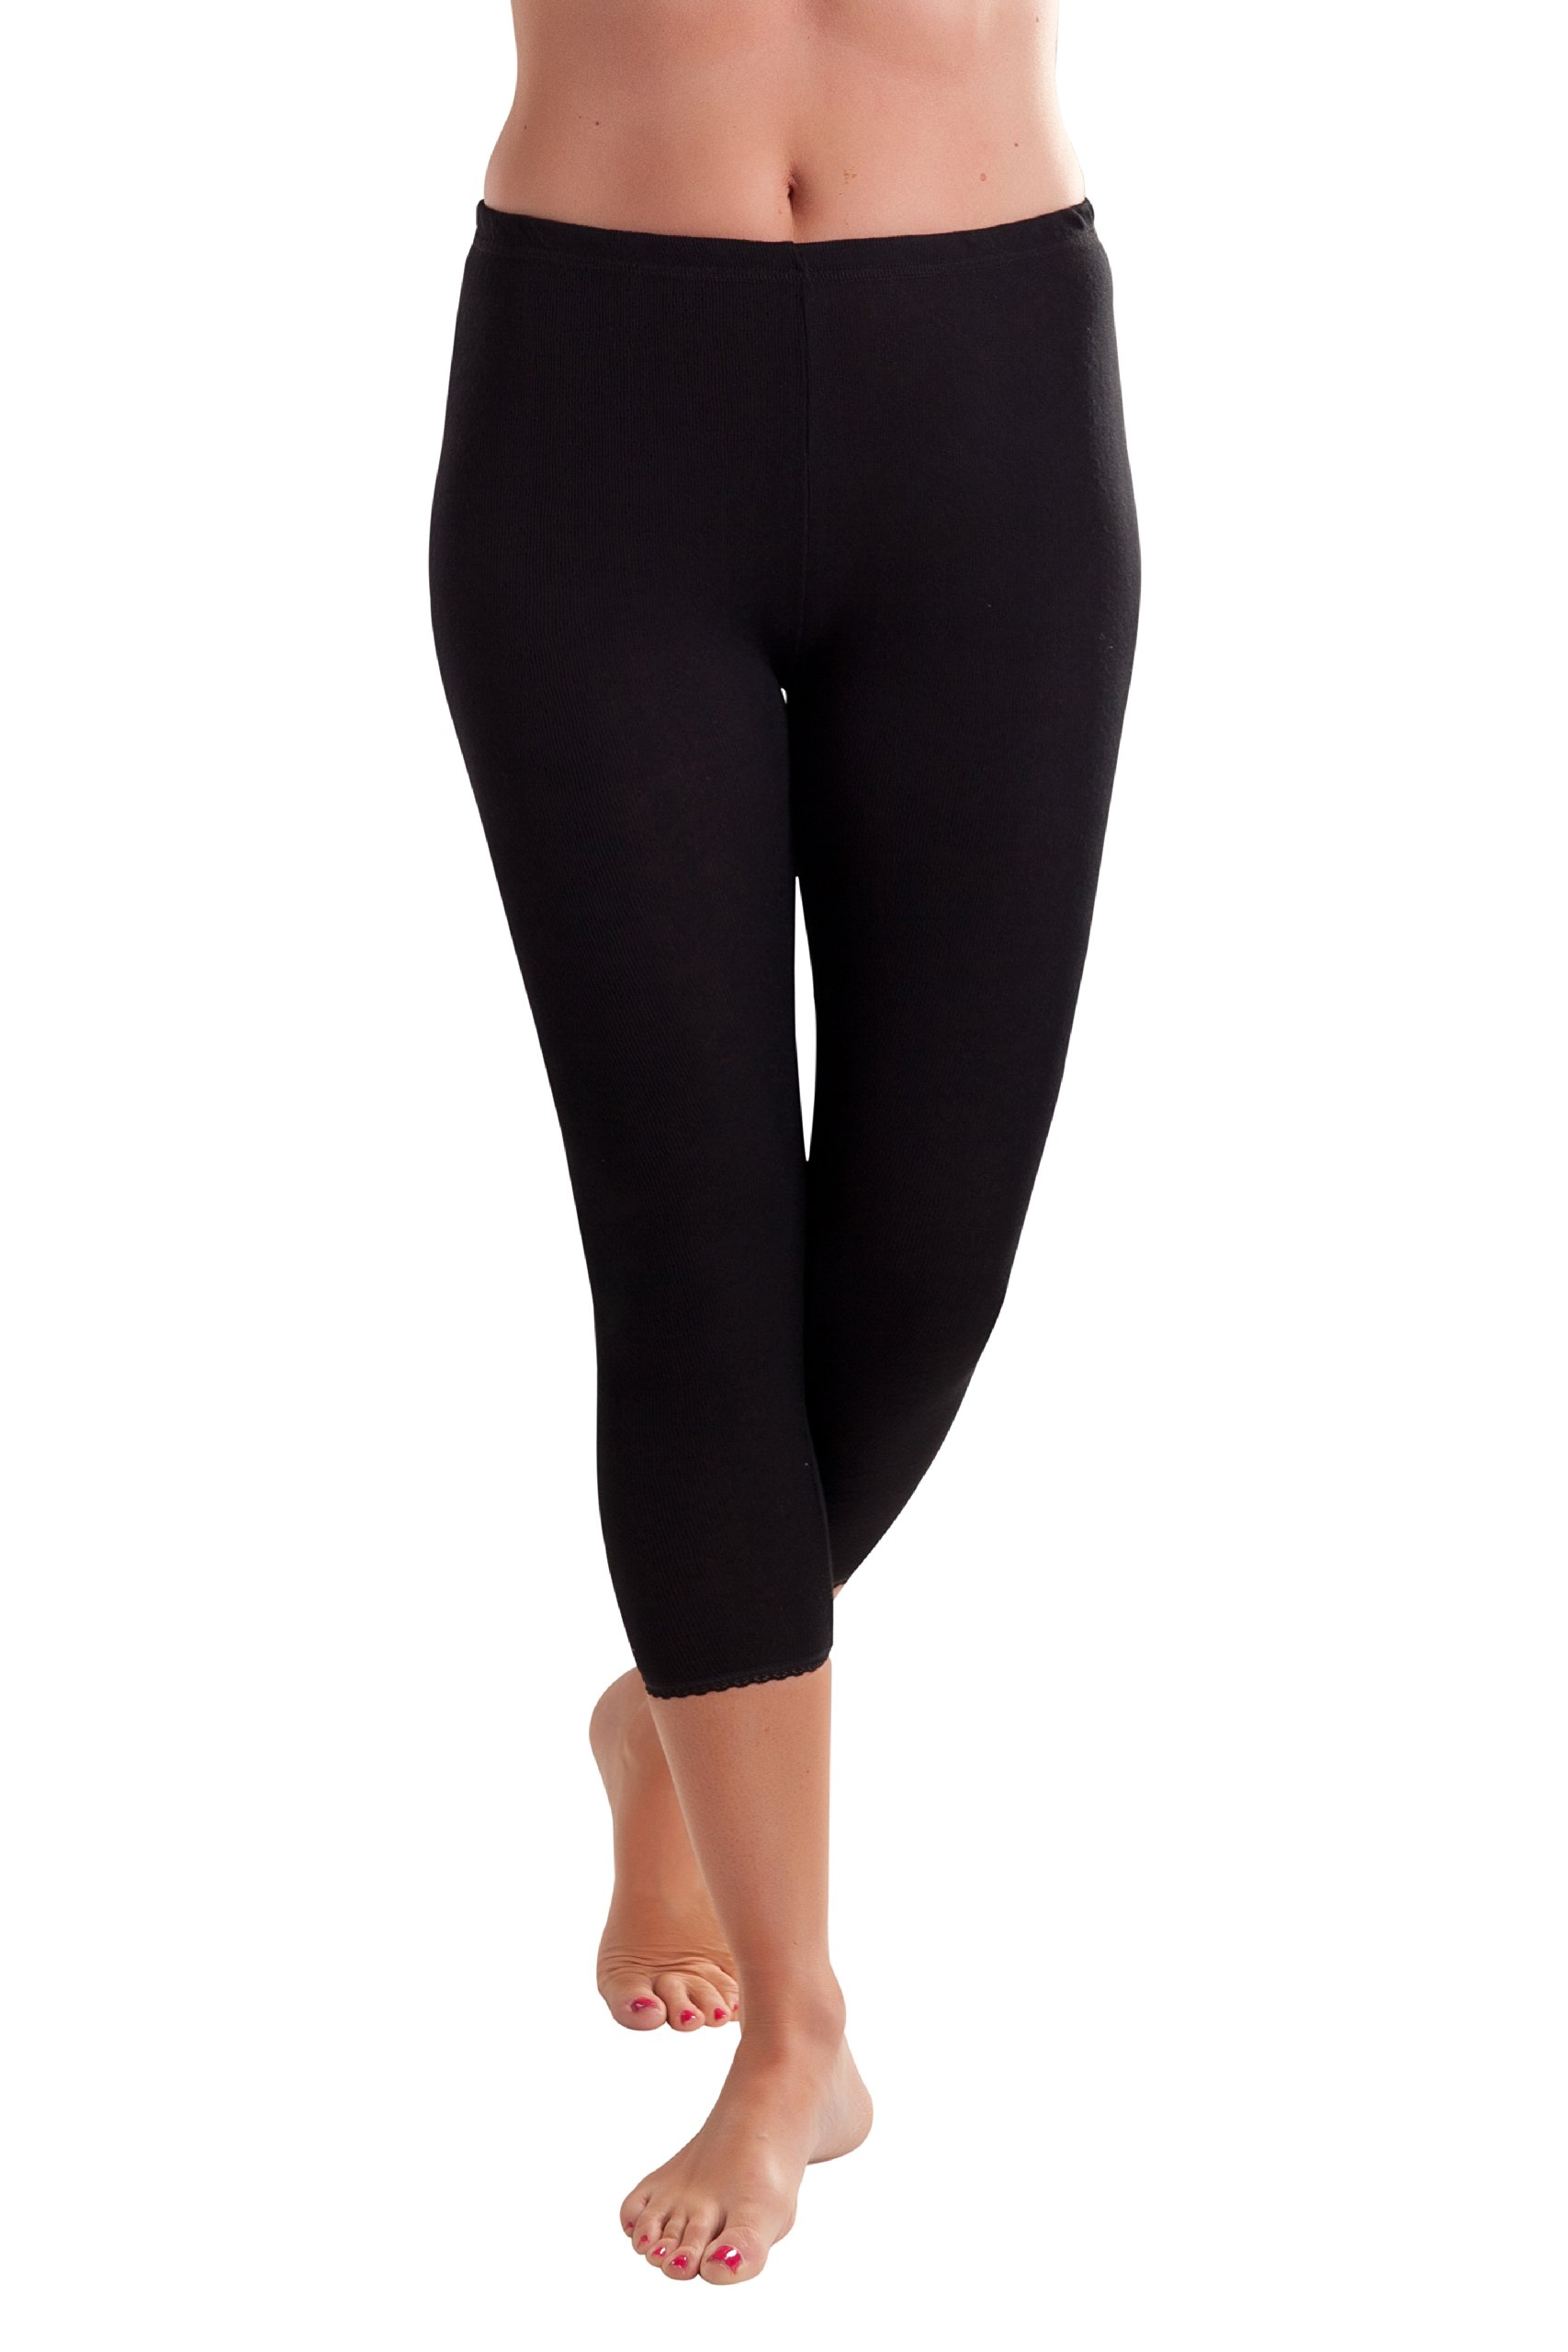 Octave Womens Thermal 3/4 Length Long Jane (Extra Warm) - Size OS, Black